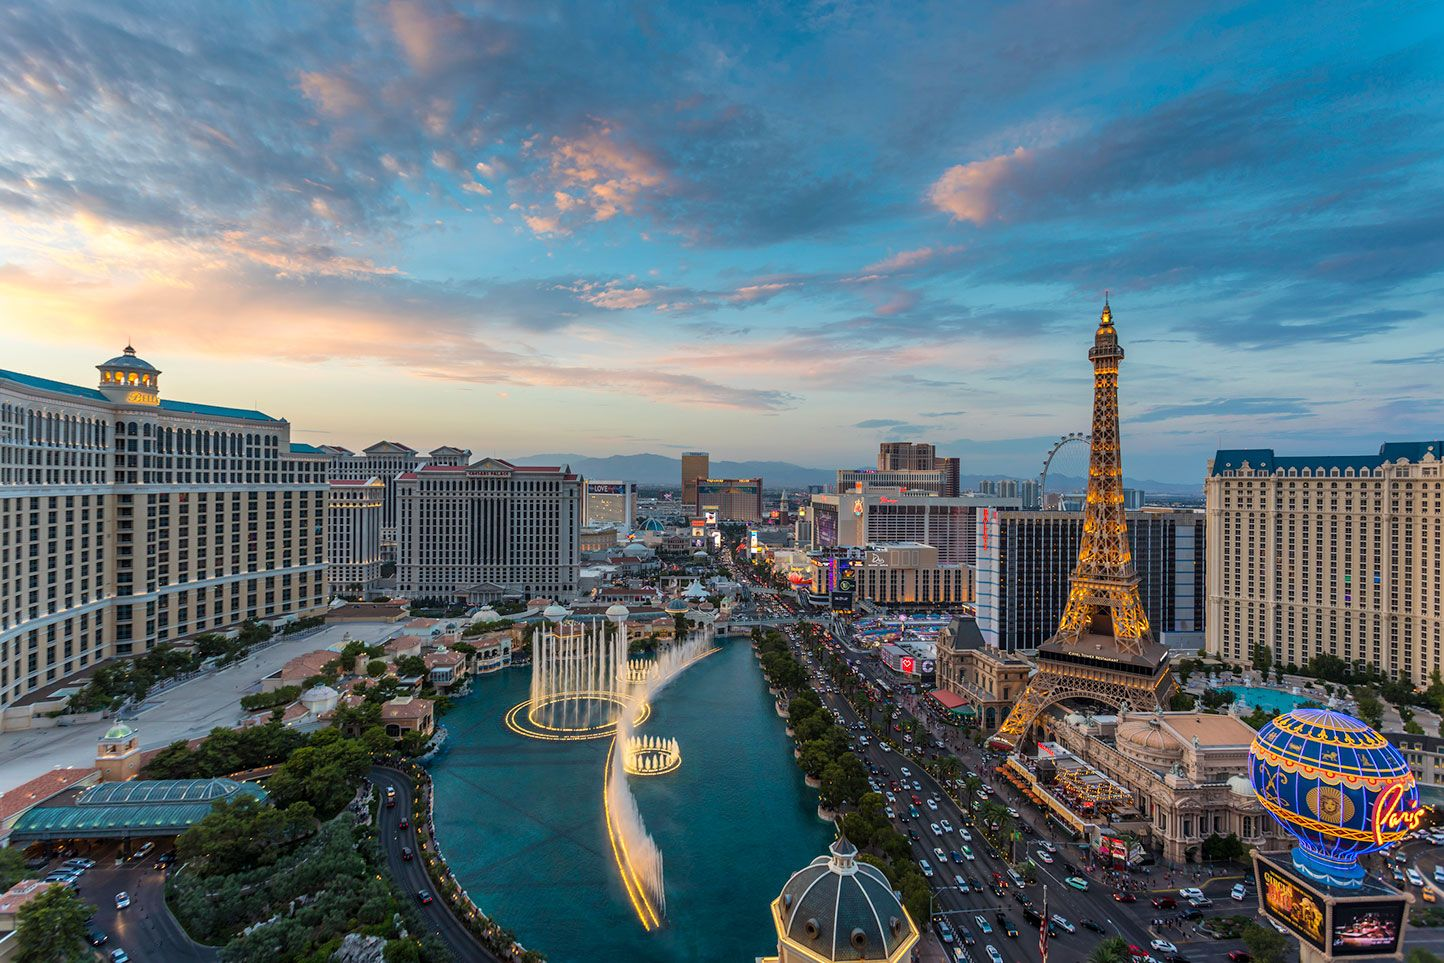 ConsumerAffairs CEO to present on why leads convert at LeadsCon Las Vegas in March